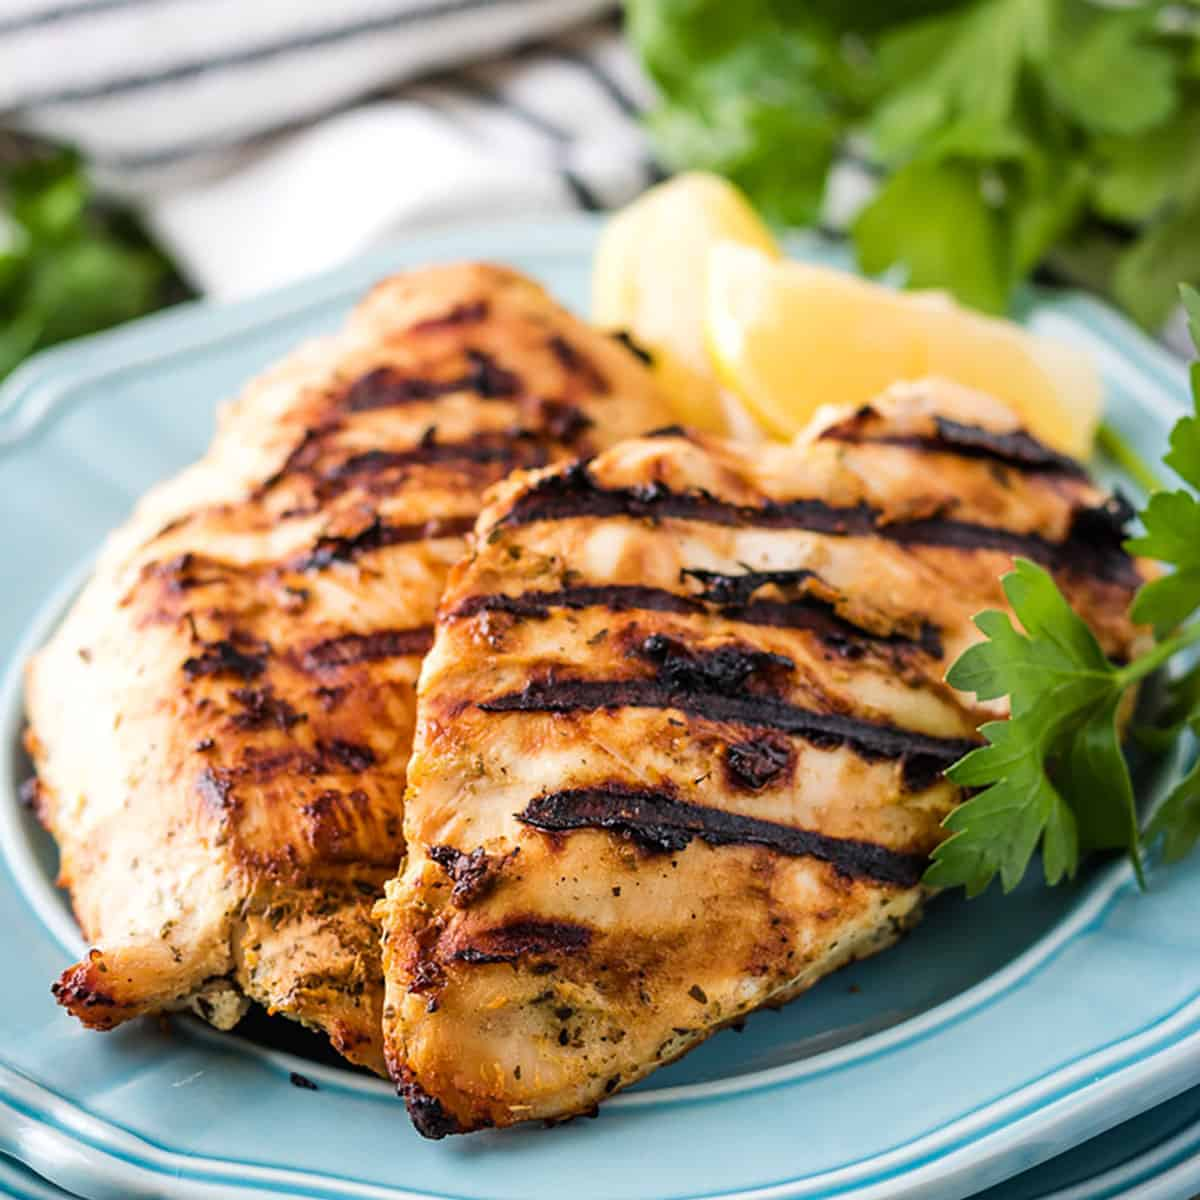 Perfectly grilled chicken on a blue plate with lemon slices.